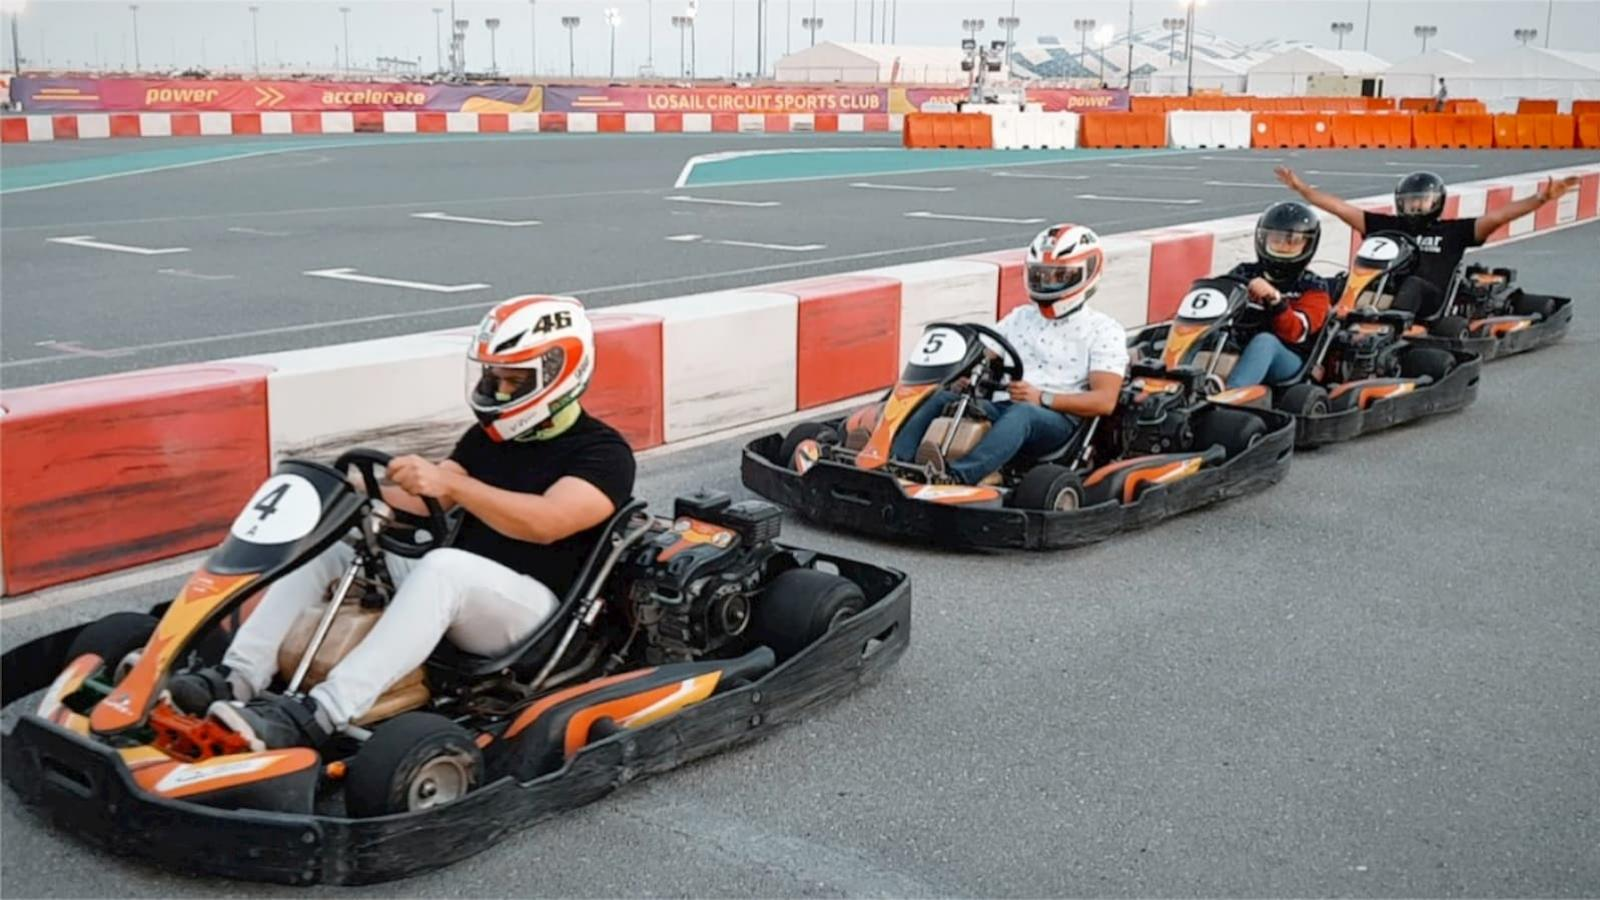 WATCH: Qatar Living goes karting at Losail Circuit Sports Club